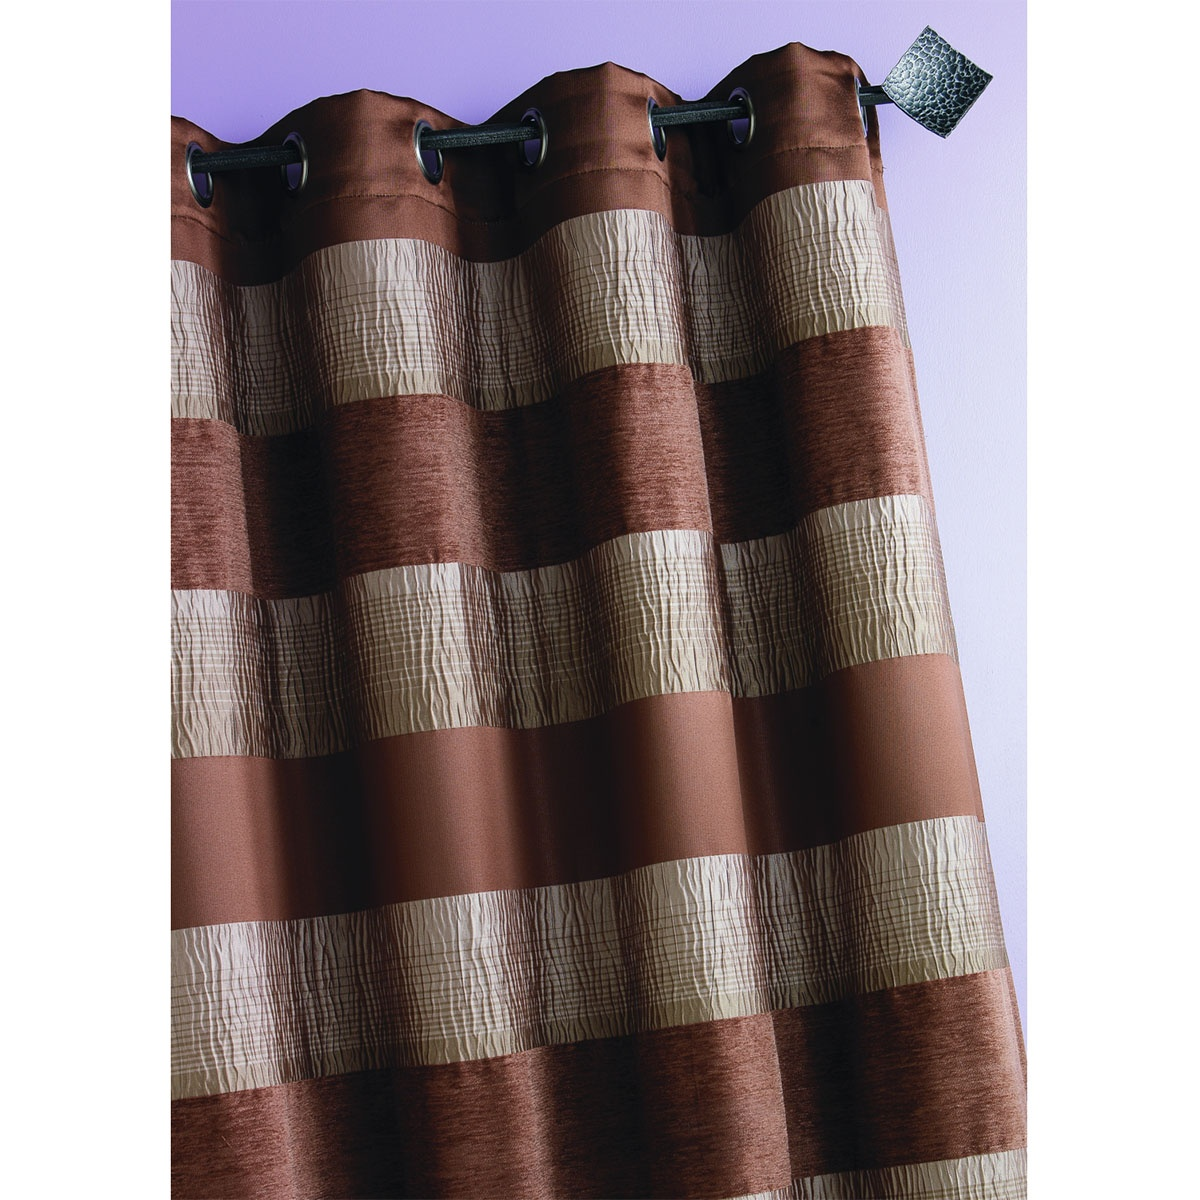 Rideau Jacquard grosses rayures horizontales (Taupe)